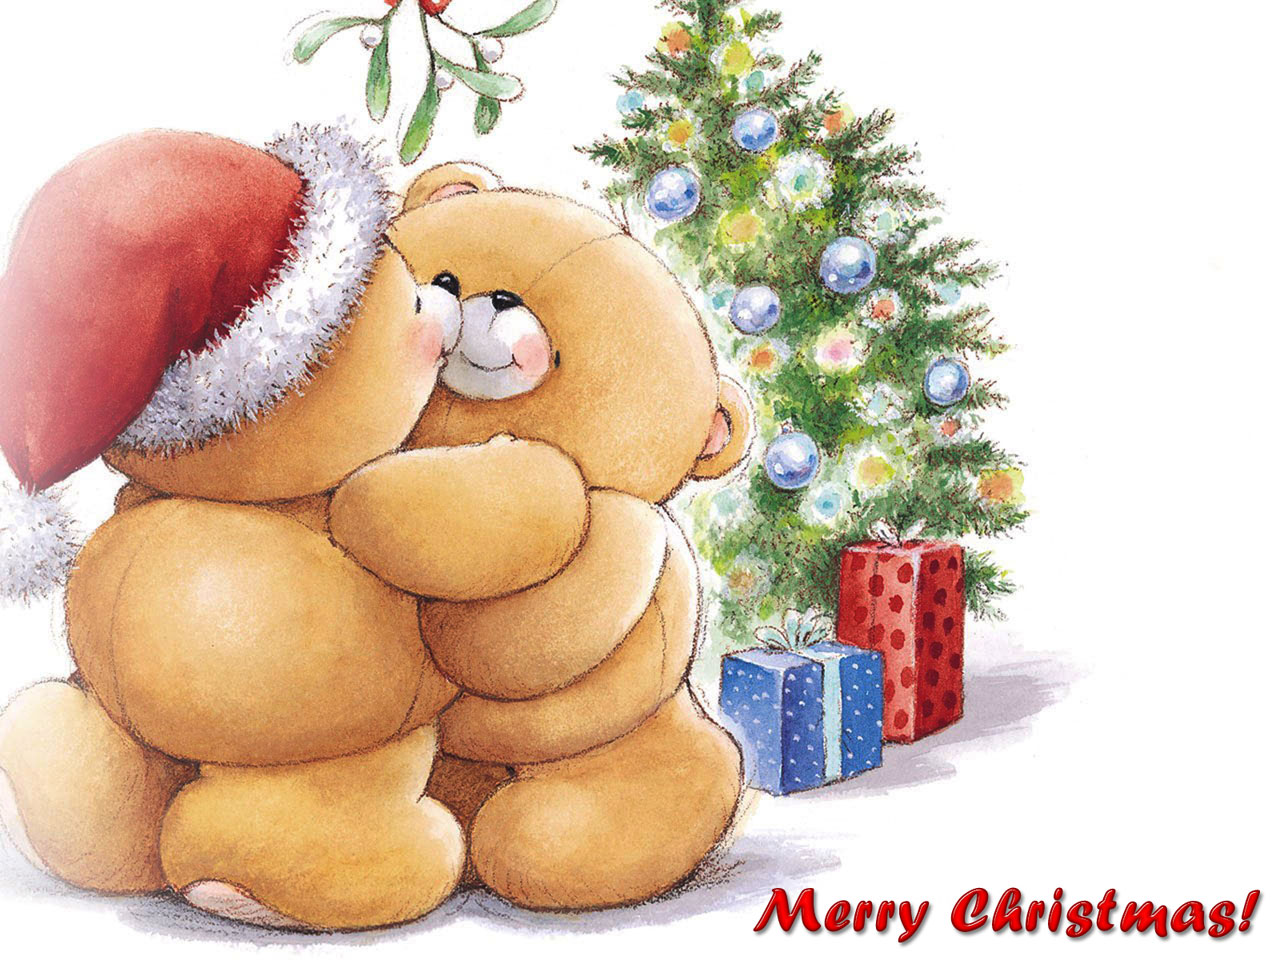 Merry Christmas Wallpapers With Teddy In Santa Hat Giving